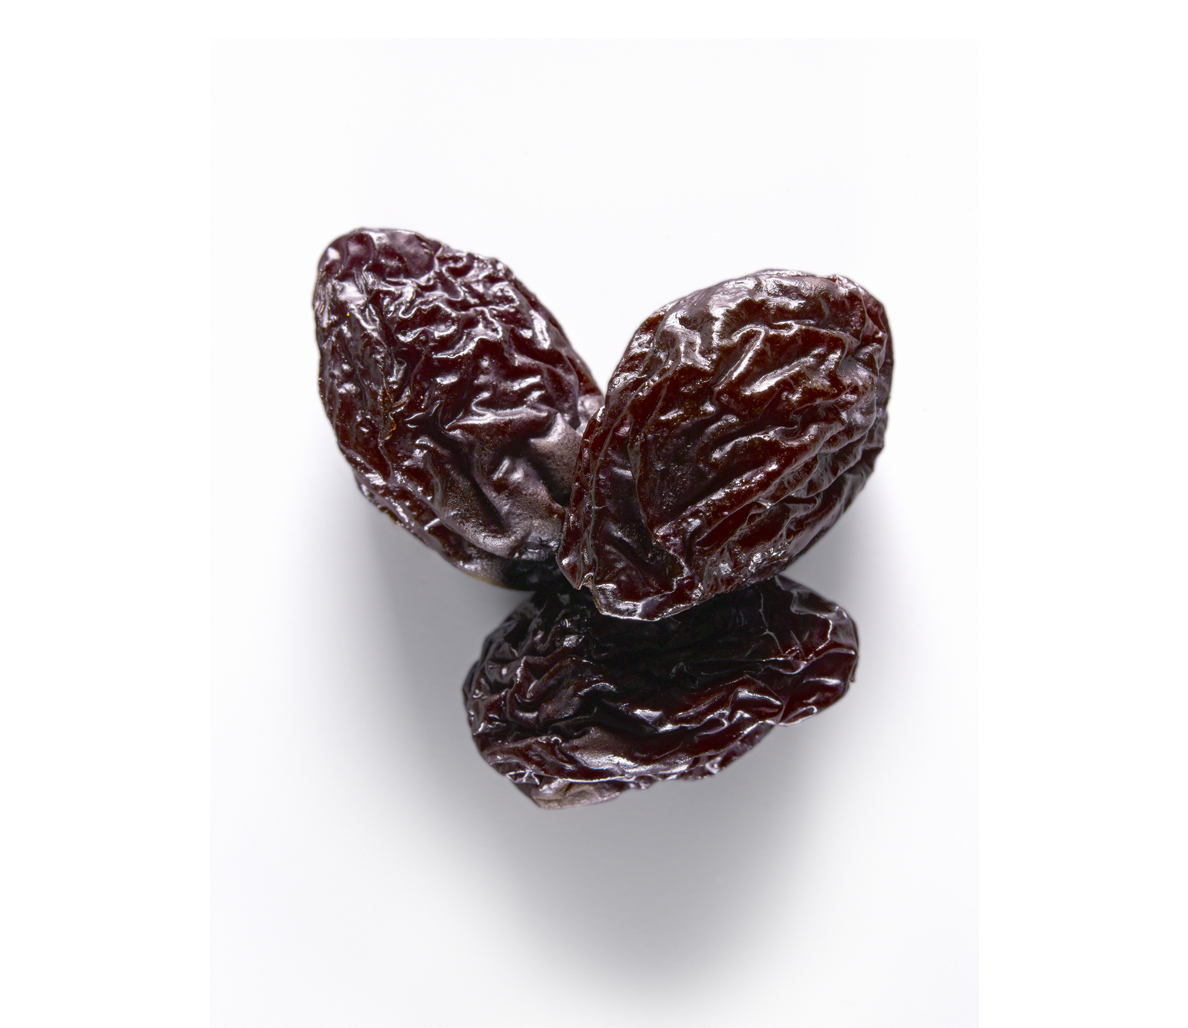 Dried Plums May Reduce Your Risk for Colon Cancer, Study Says